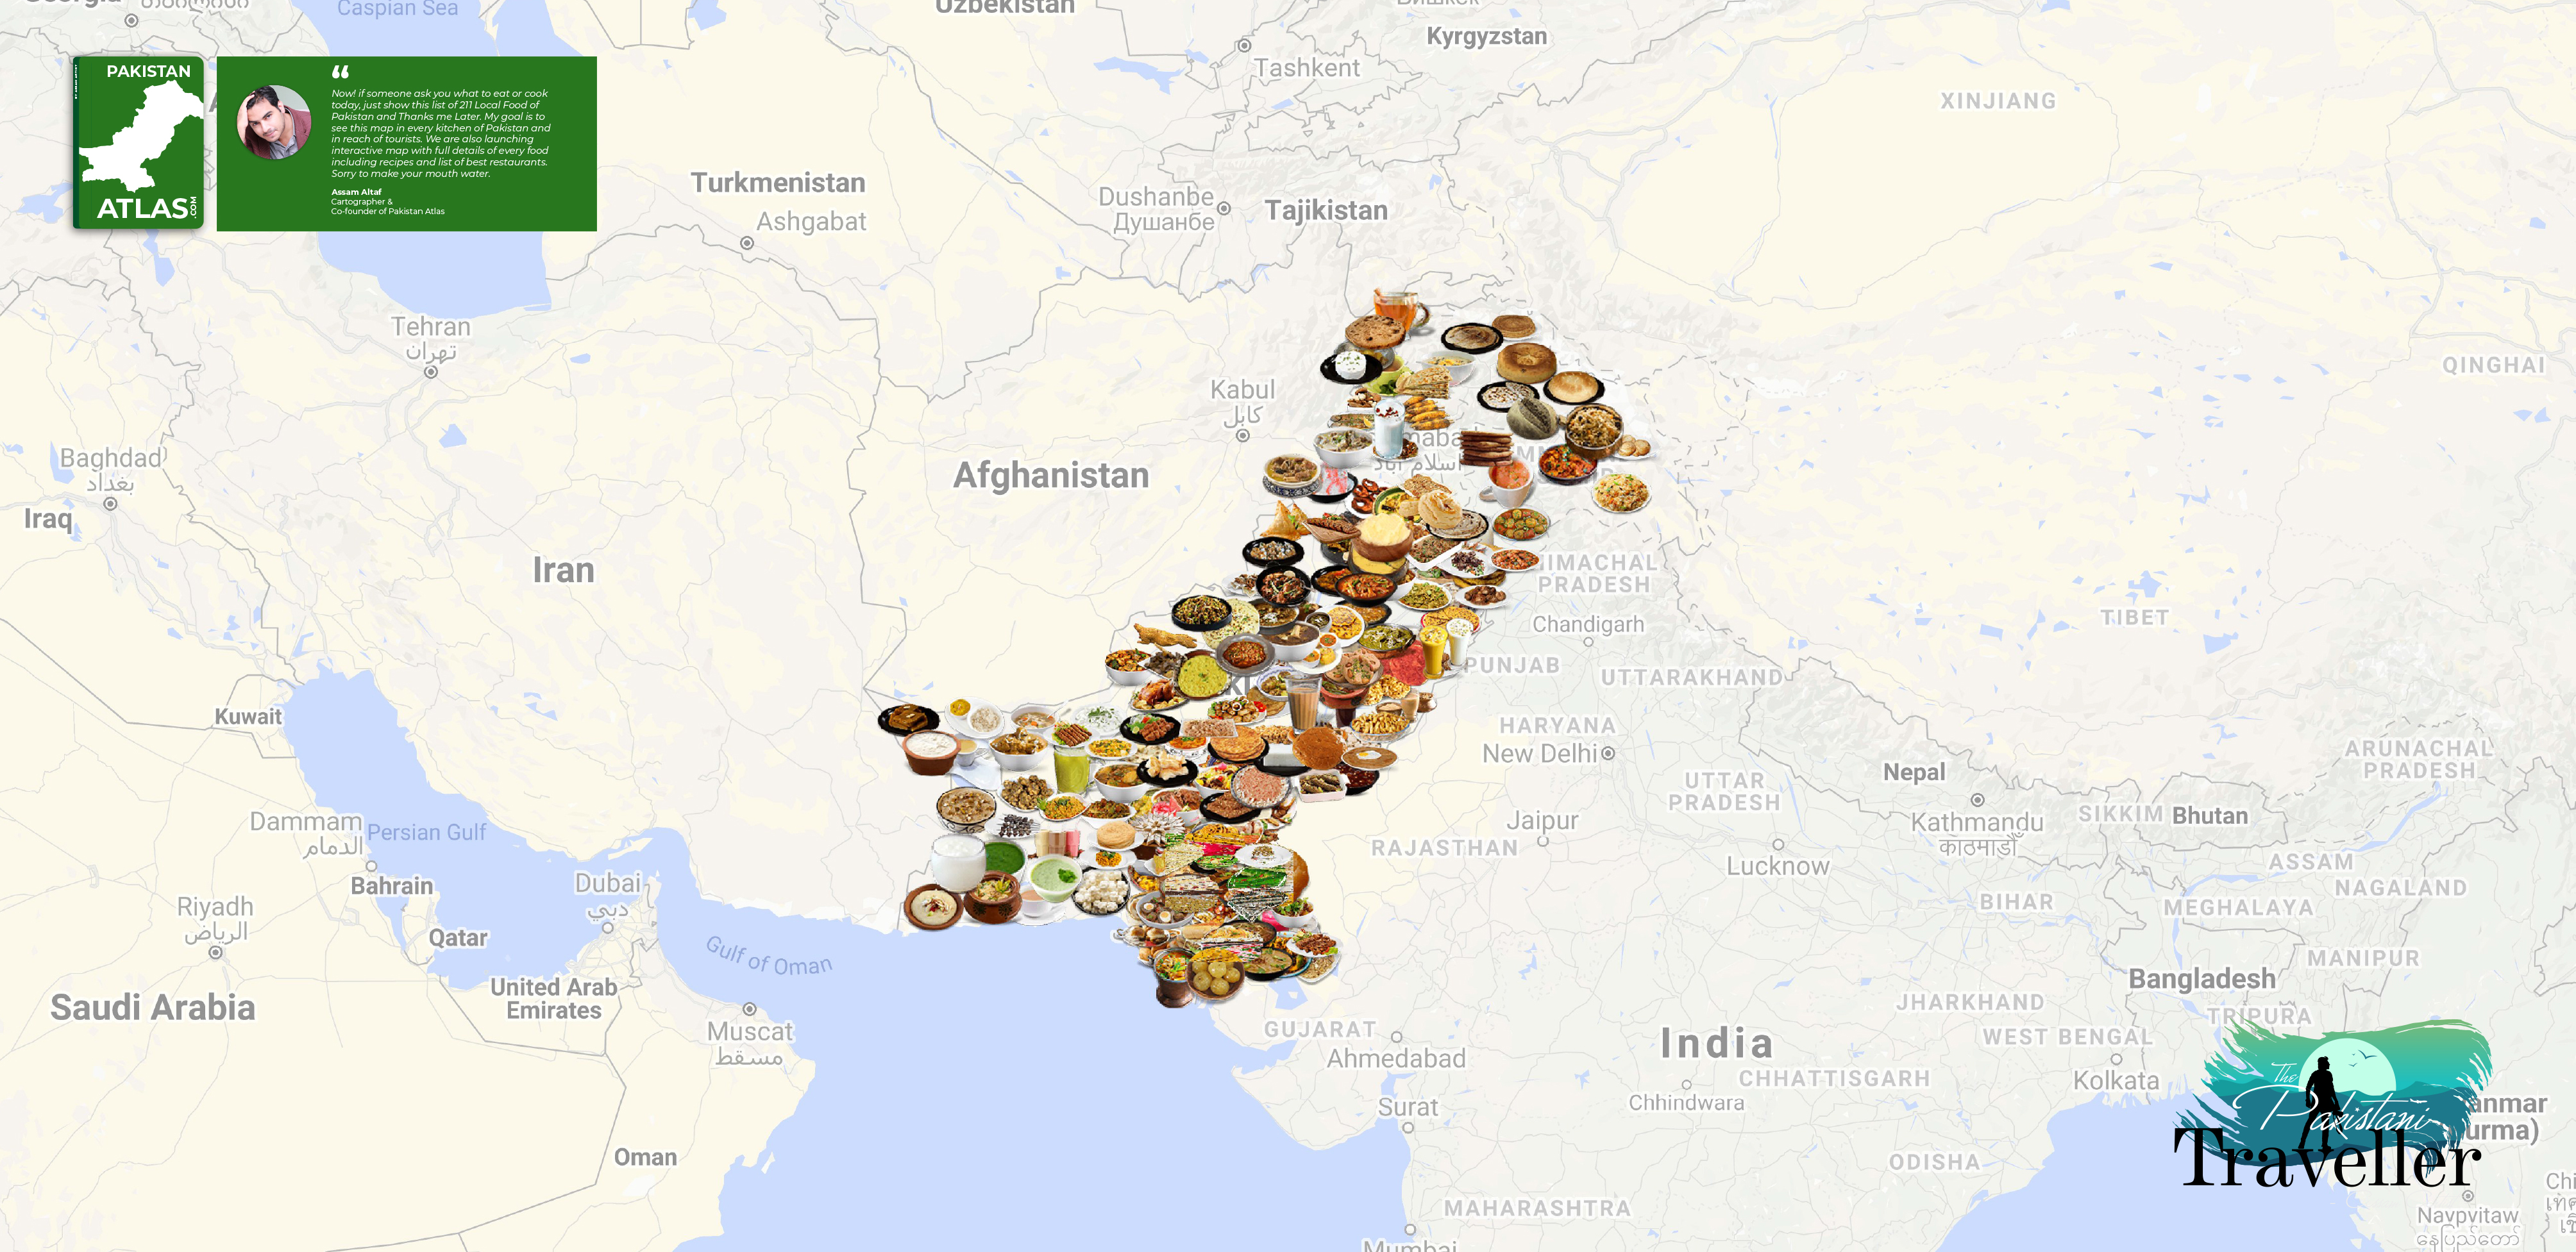 Pakistani Traditional food map